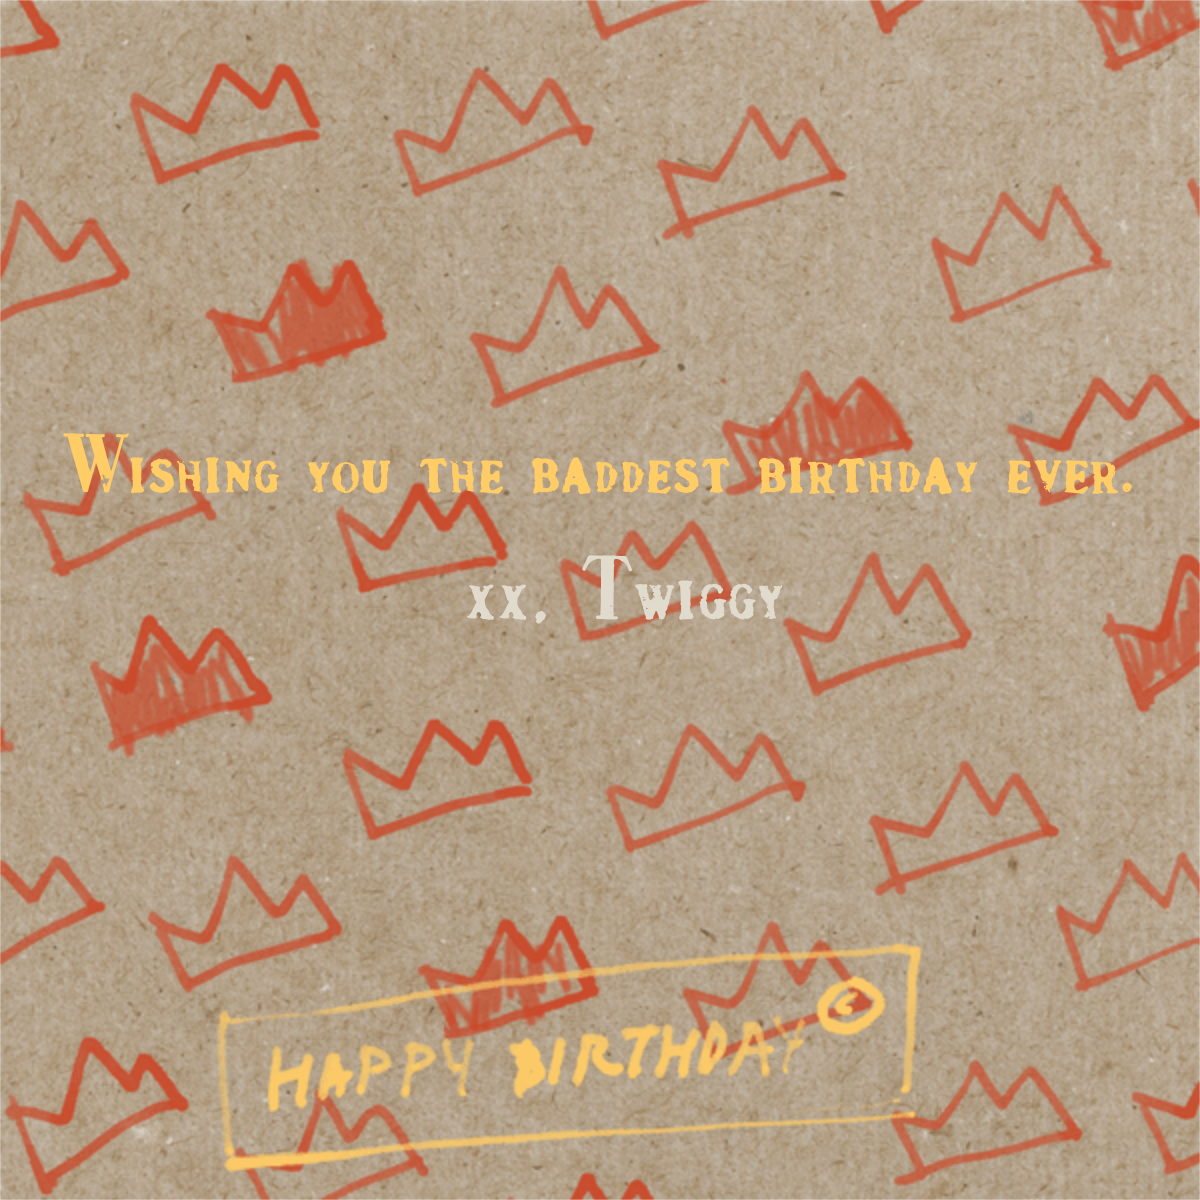 Paper Crowns - Paperless Post - Birthday